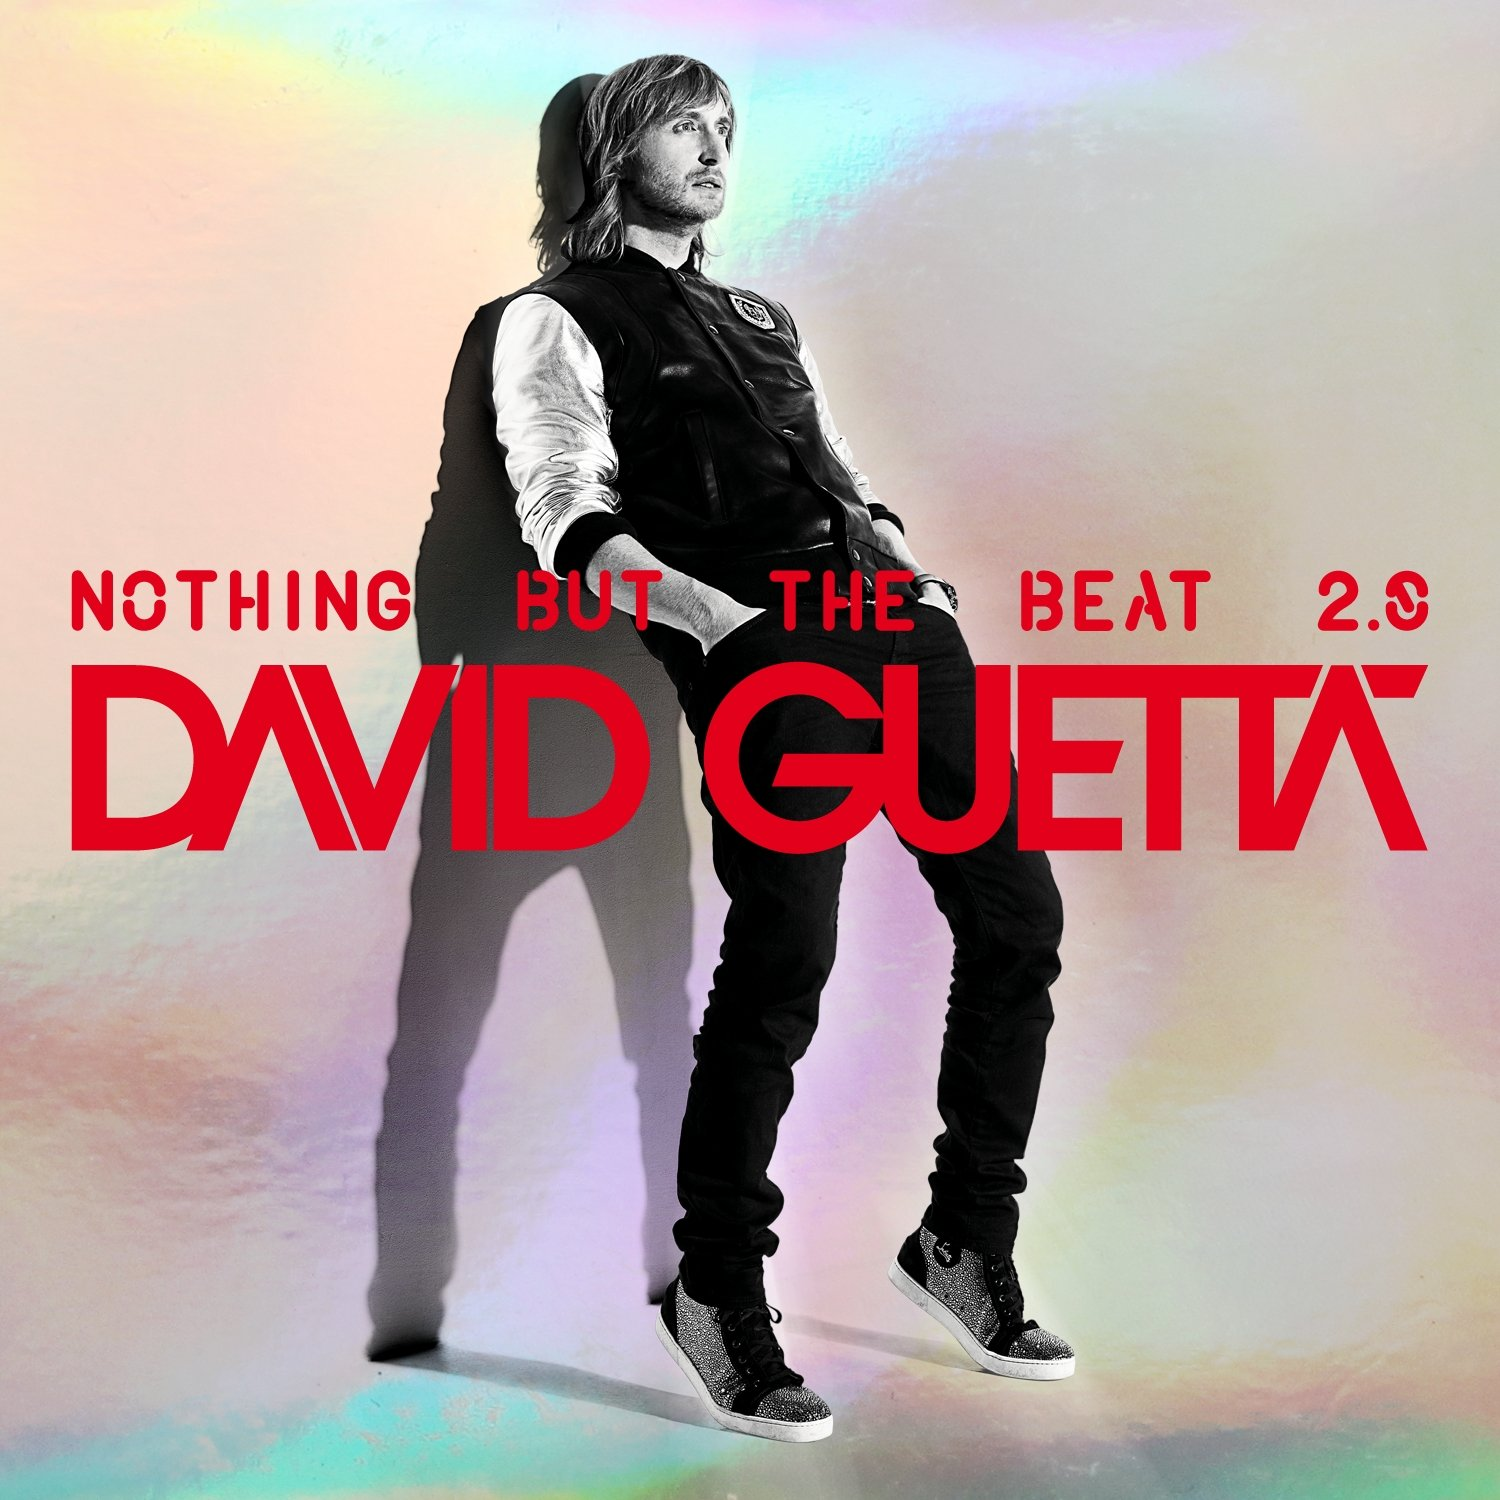 David Guetta - Nothing But The Beat 2.0 [2012]